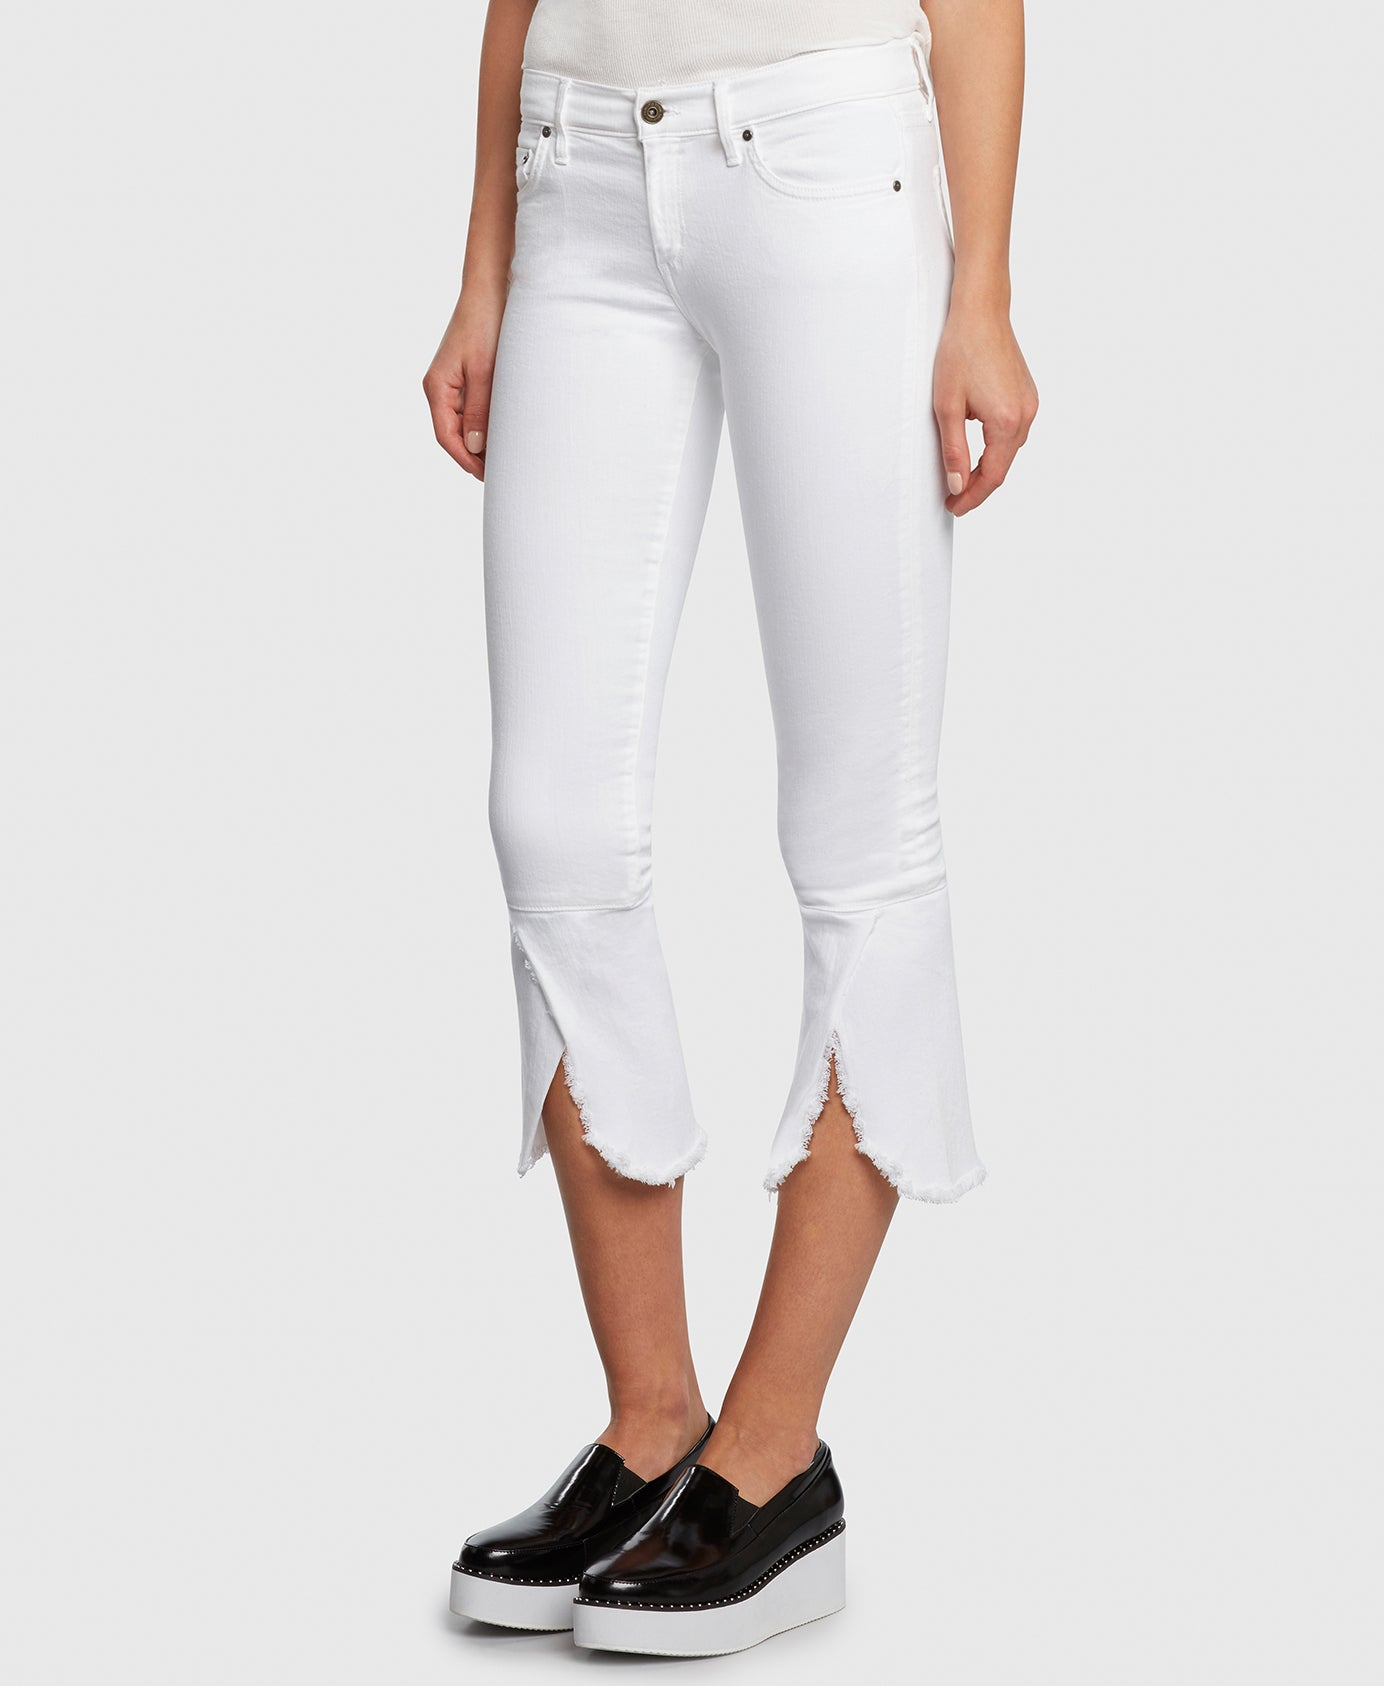 Principle FLIRT in Promise cropped jeans detail